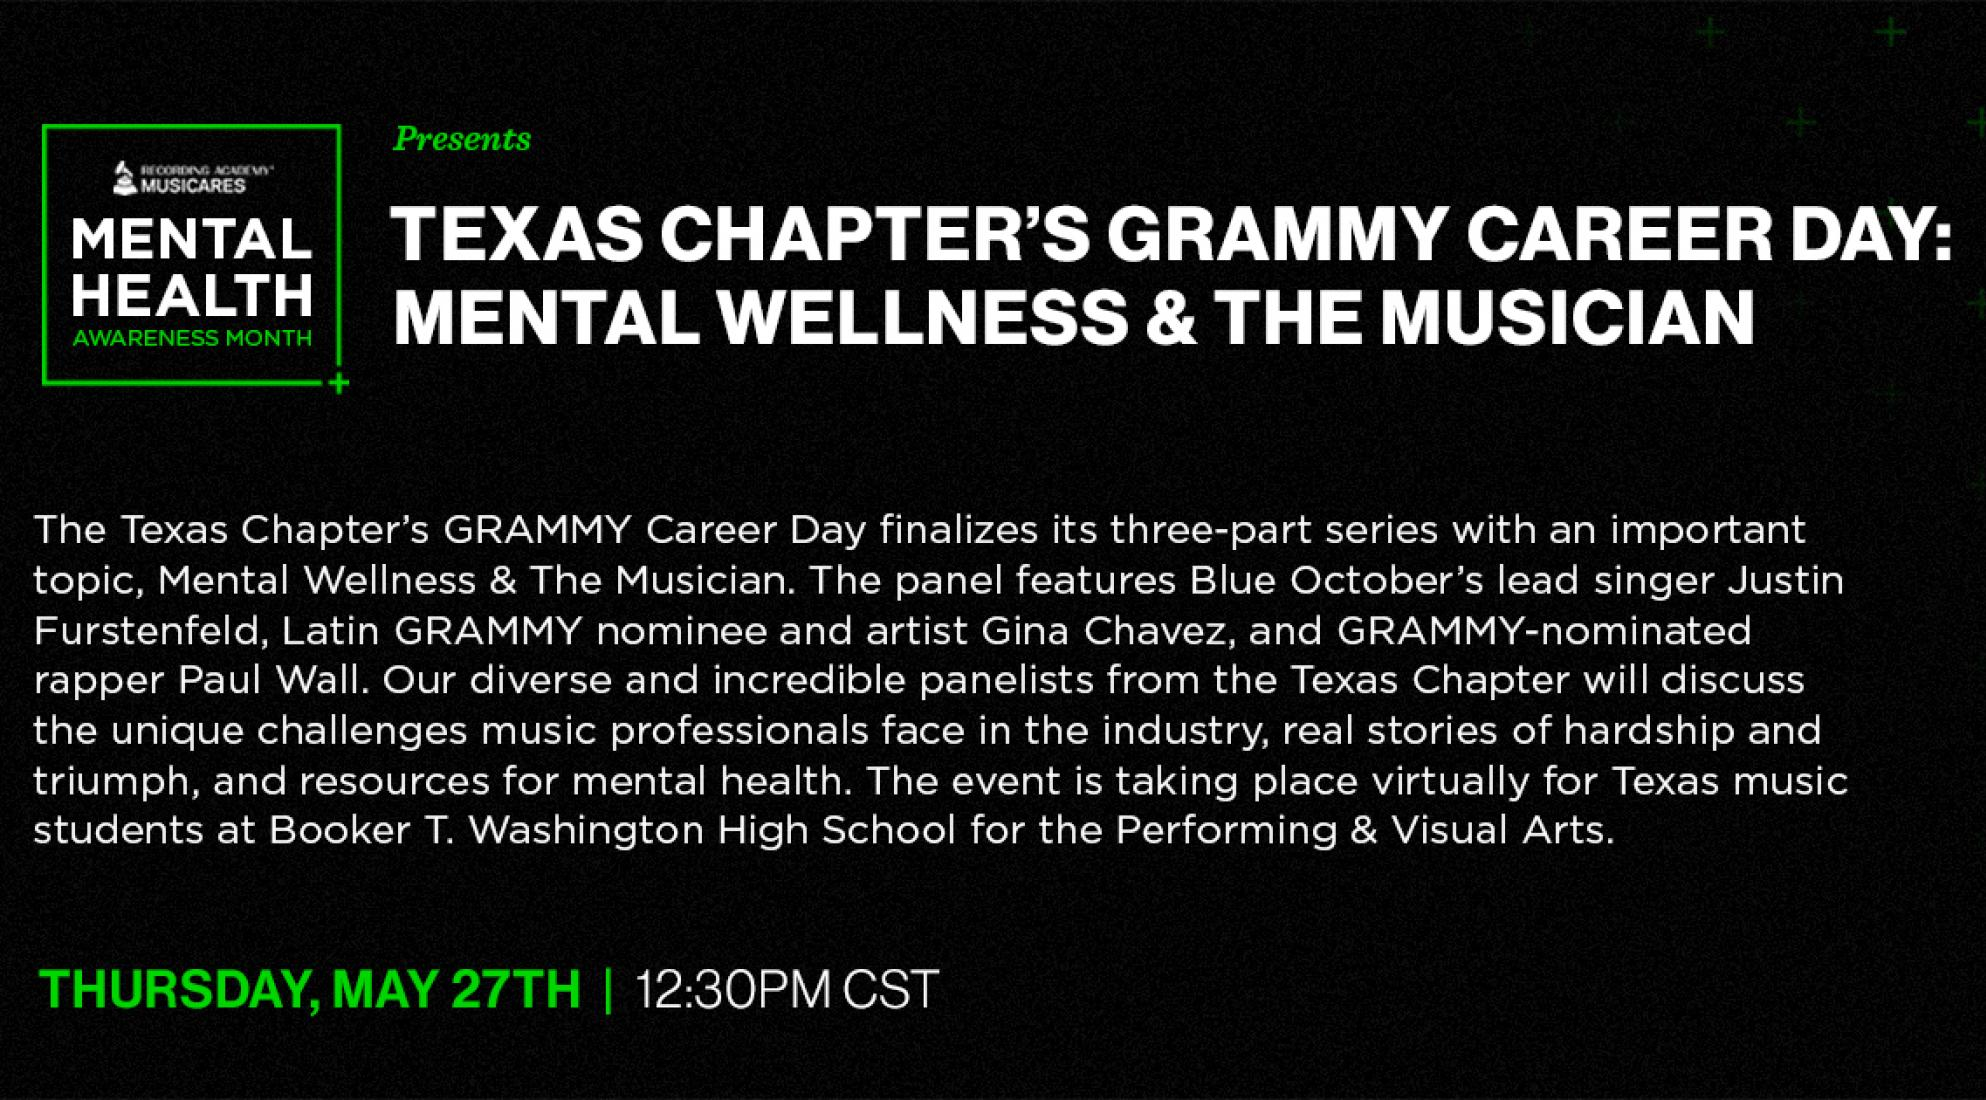 GRAMMY Career Day: Mental Wellness and The Musician